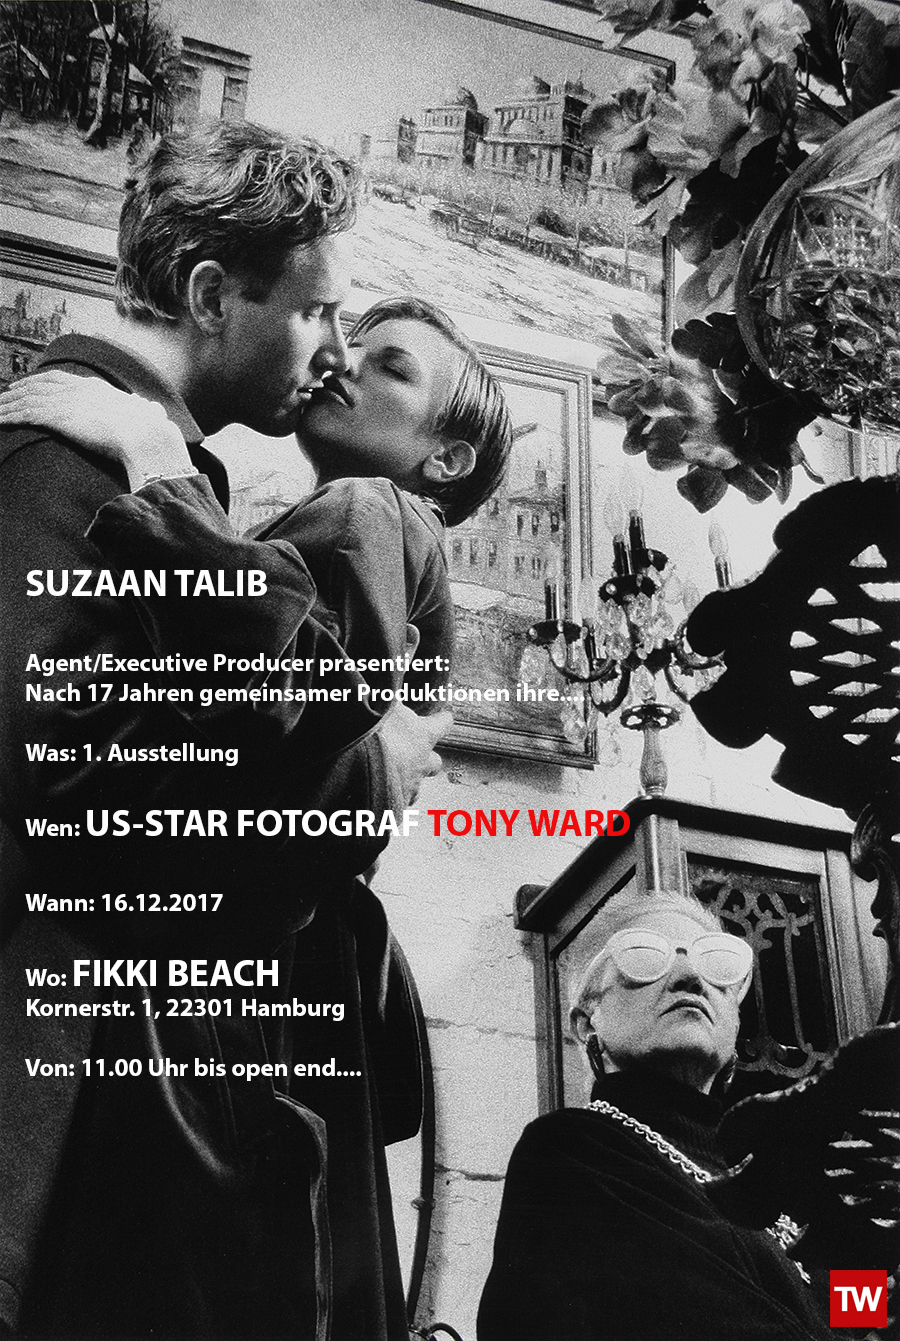 Tony_Ward_tableaux_vivants_Hamburg_Germany_Fikki_Beach_Suzaan_Talib_production